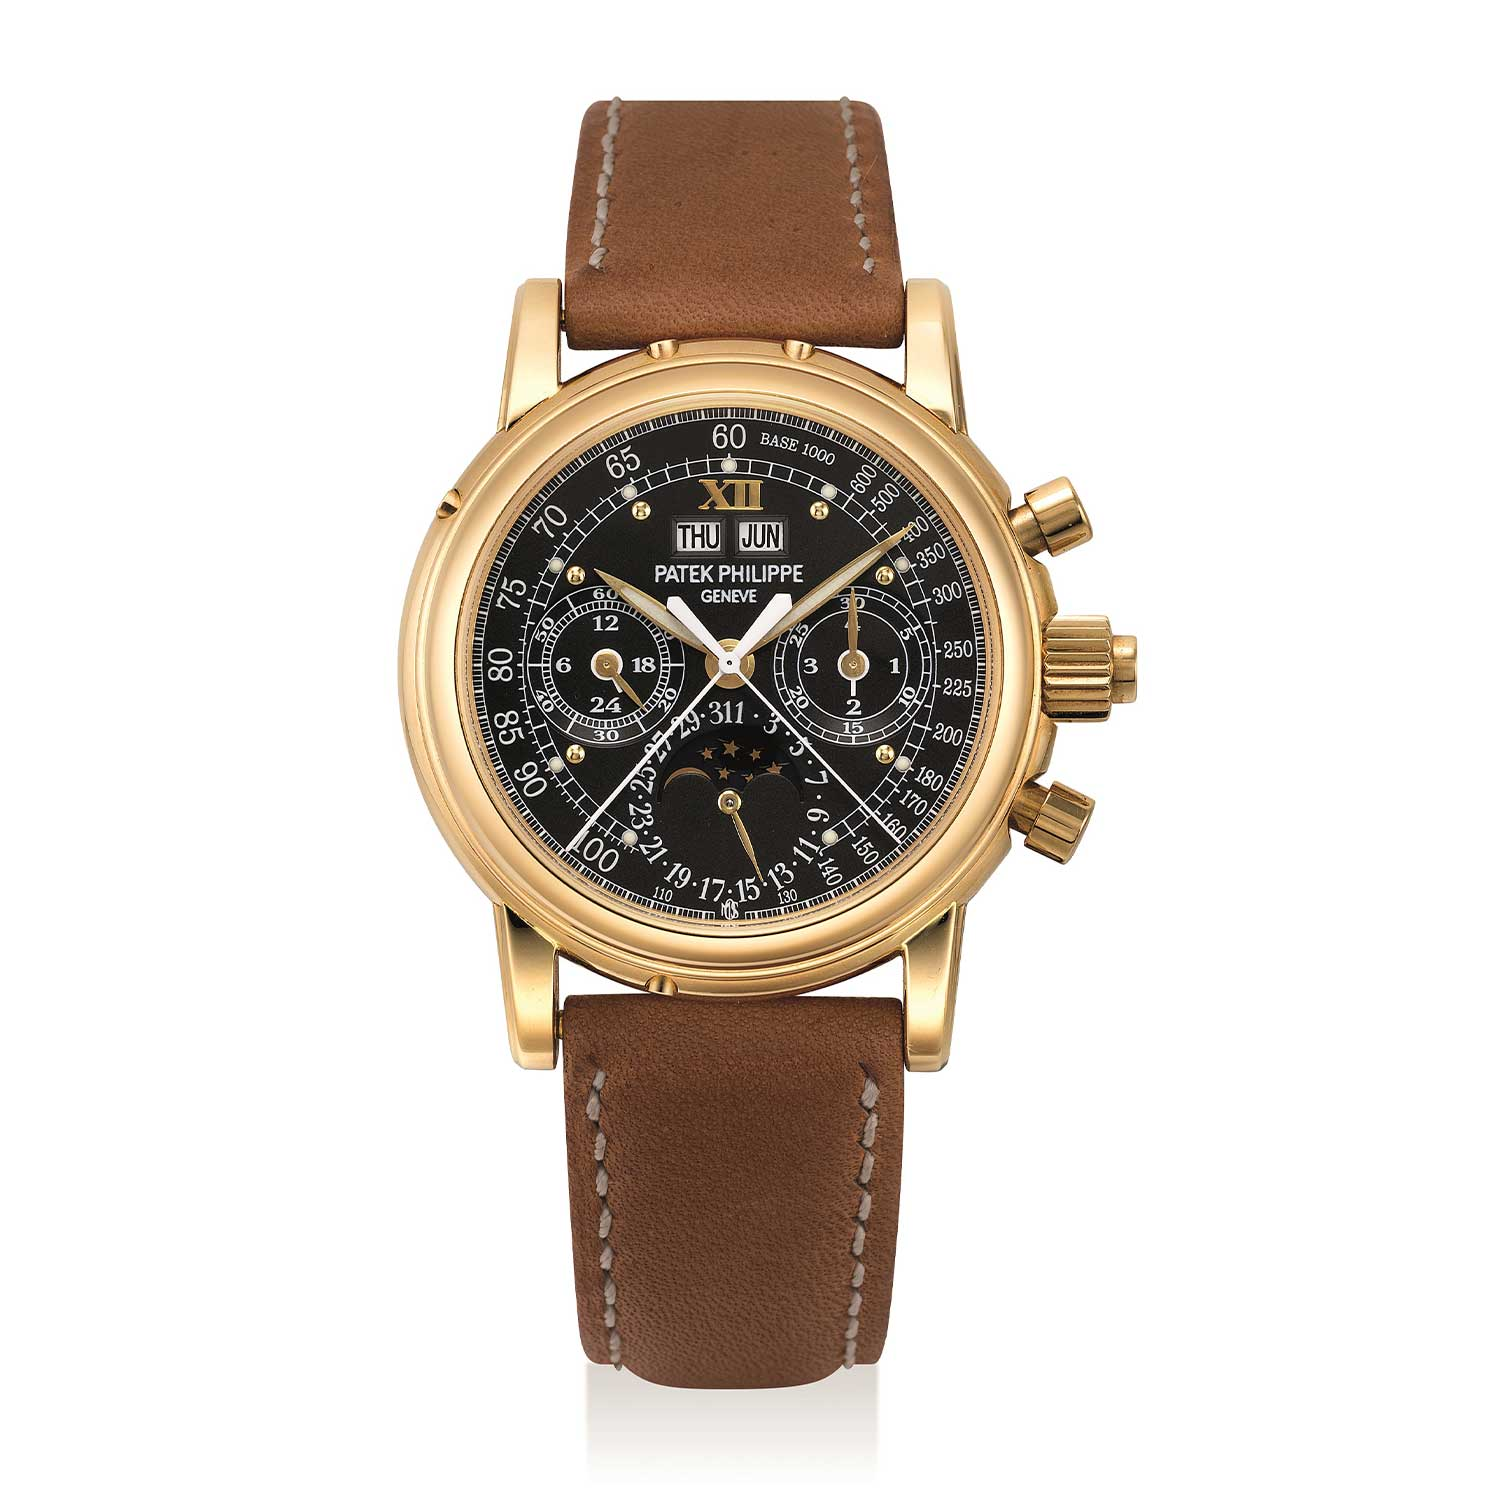 Patek Philippe Ref. 5004J-017; possibly unique yellow gold perpetual calendar split seconds chronograph wristwatch with moon phases, leap year, special luminous monogram dial; reportedly the former property of Hollywood mogul, Mike Ovitz (Image: phillips.com)